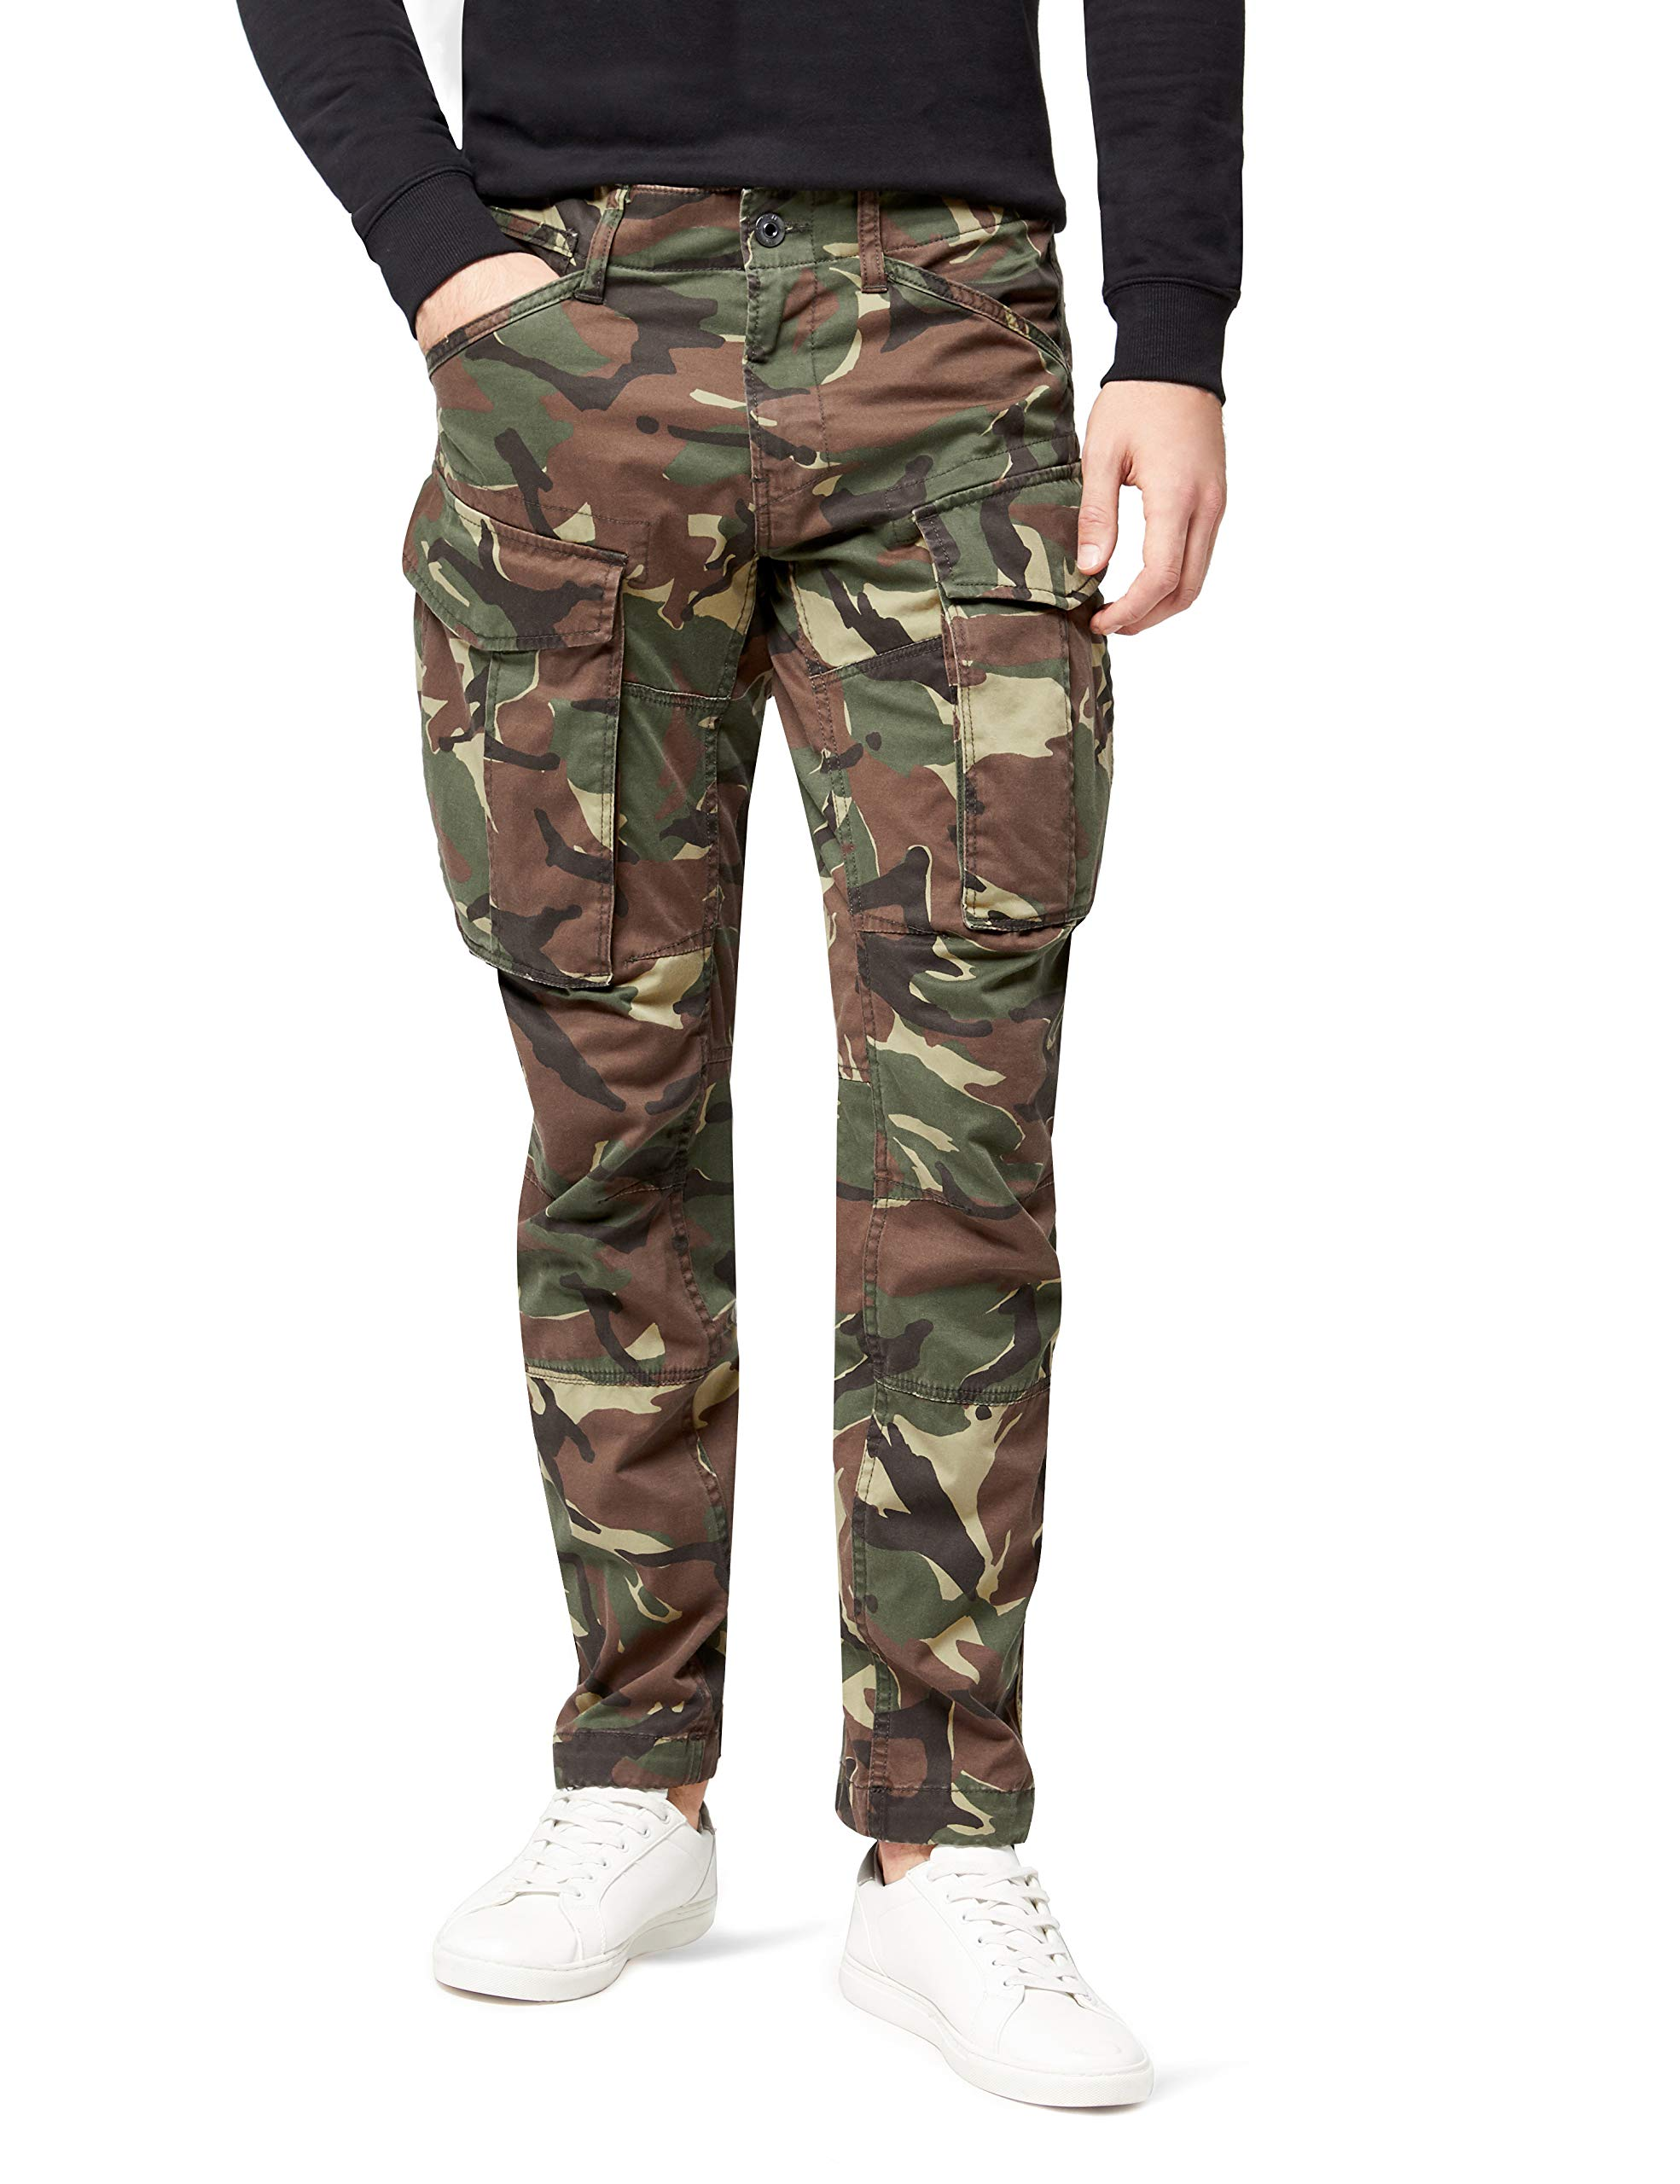 Raw 828733w30l star 3d G PantalonMulticoloredk Ao Homme Rovic Tapered 8886 Fall I29DEHW